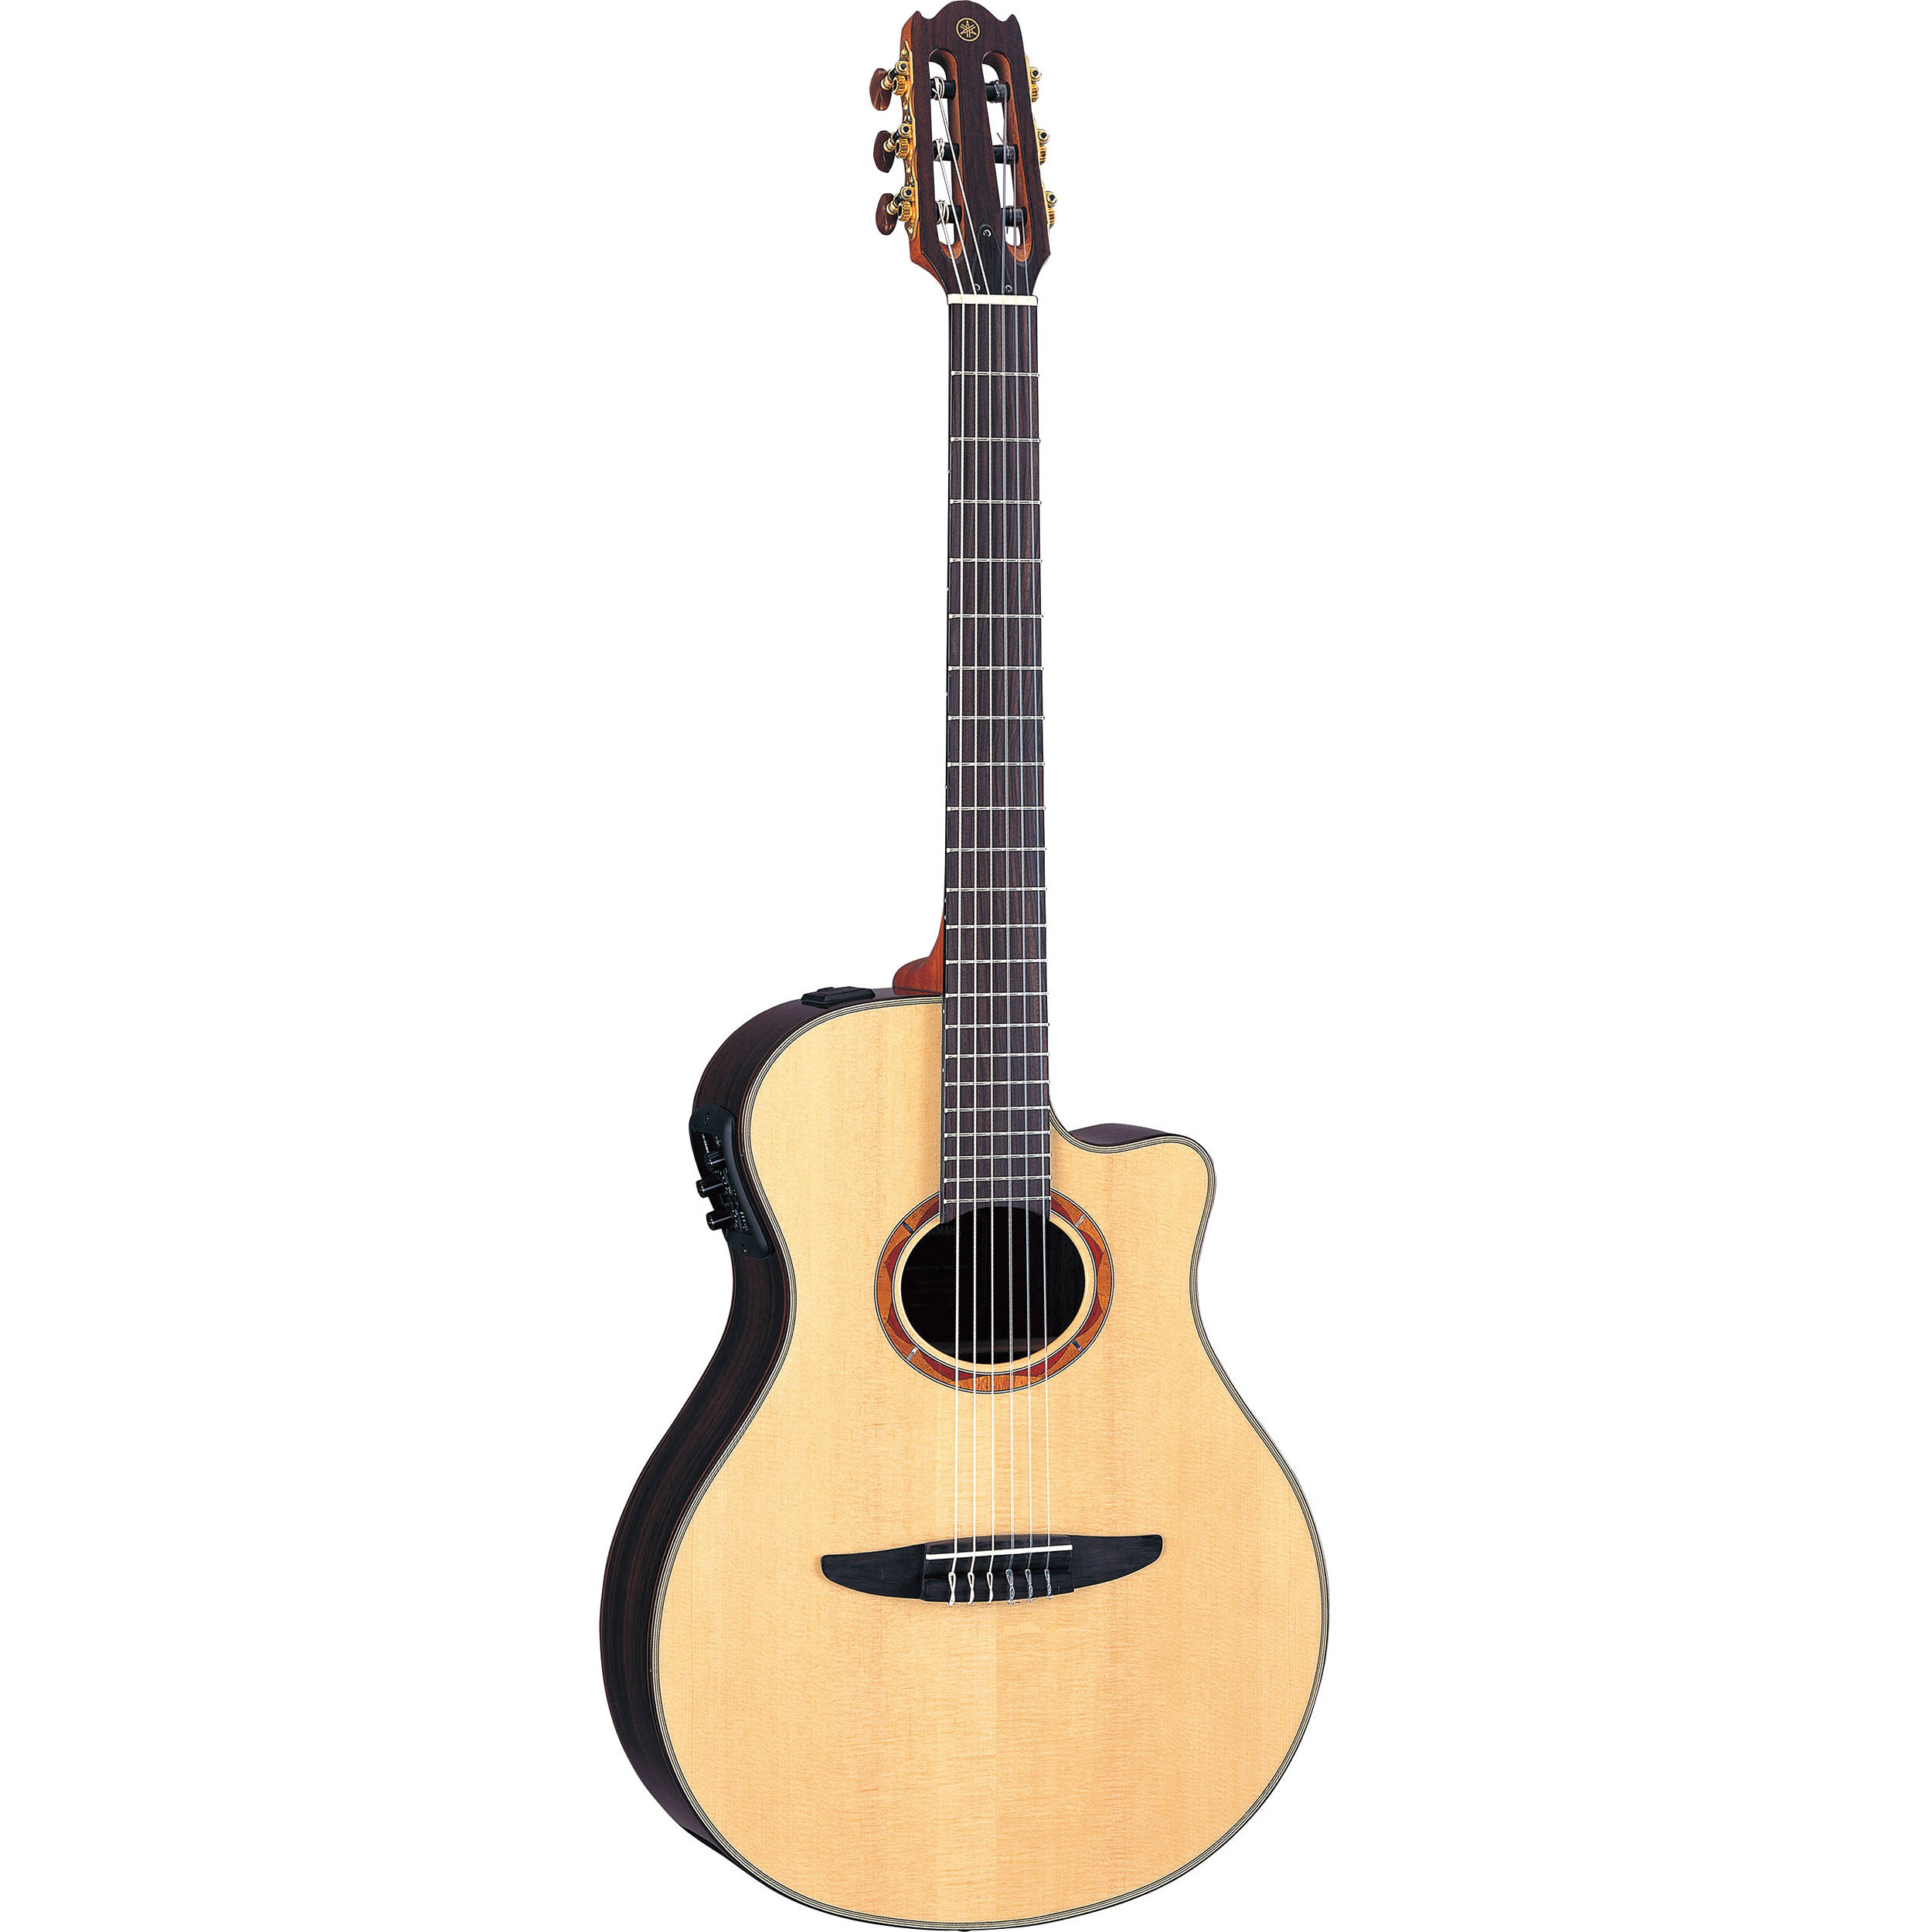 Dating yamaha classical guitars